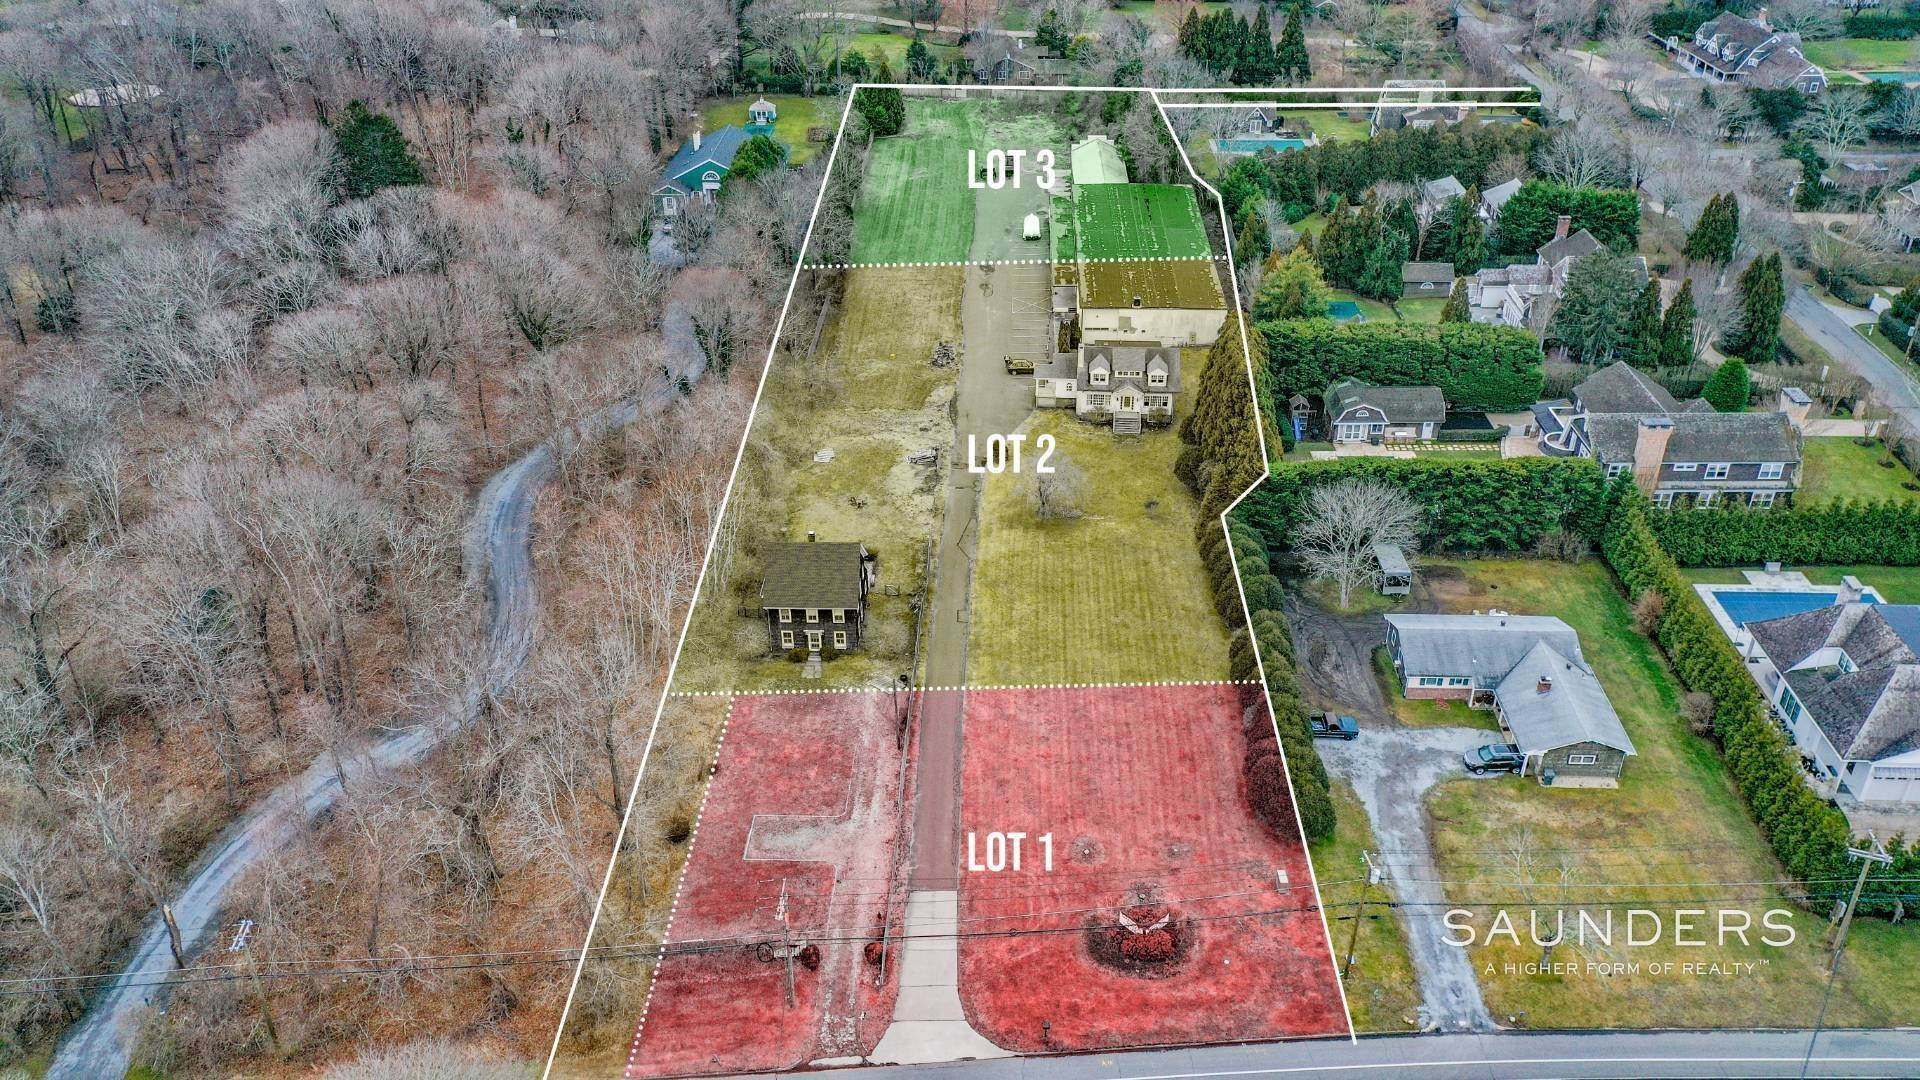 Single Family Homes for Sale at Southampton Village South- New 3 Lot Estate Subdivision/Compound 550 & 554 Hill Street, Southampton, Southampton Town, NY 11968